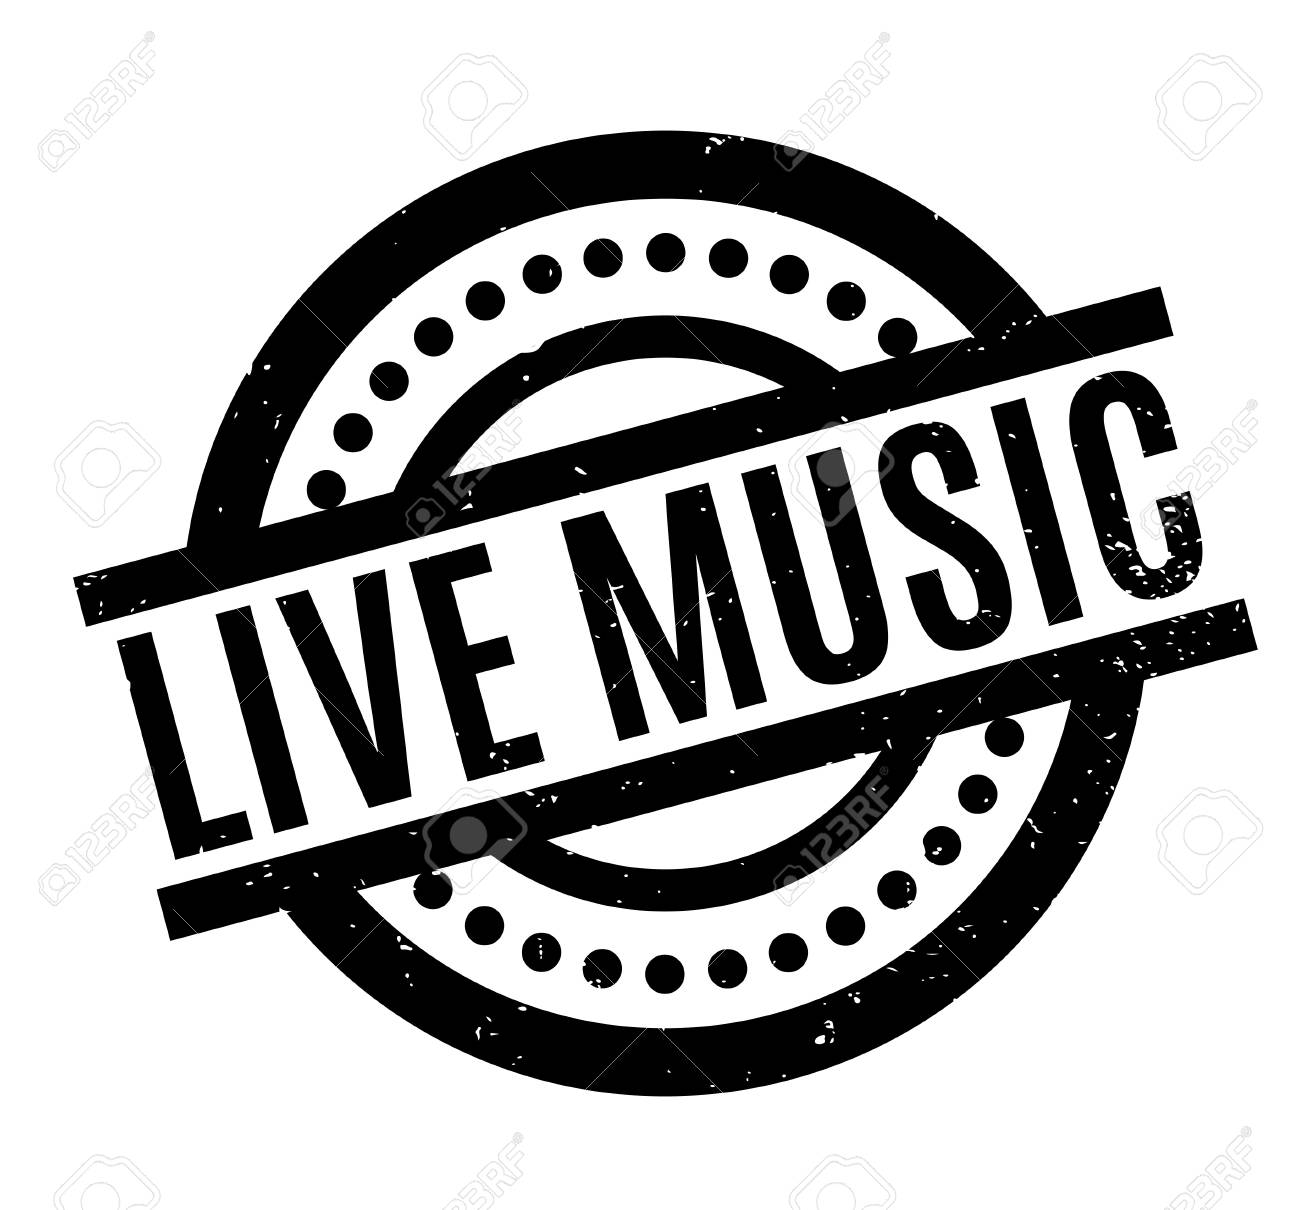 Live Music rubber stamp - 83060203